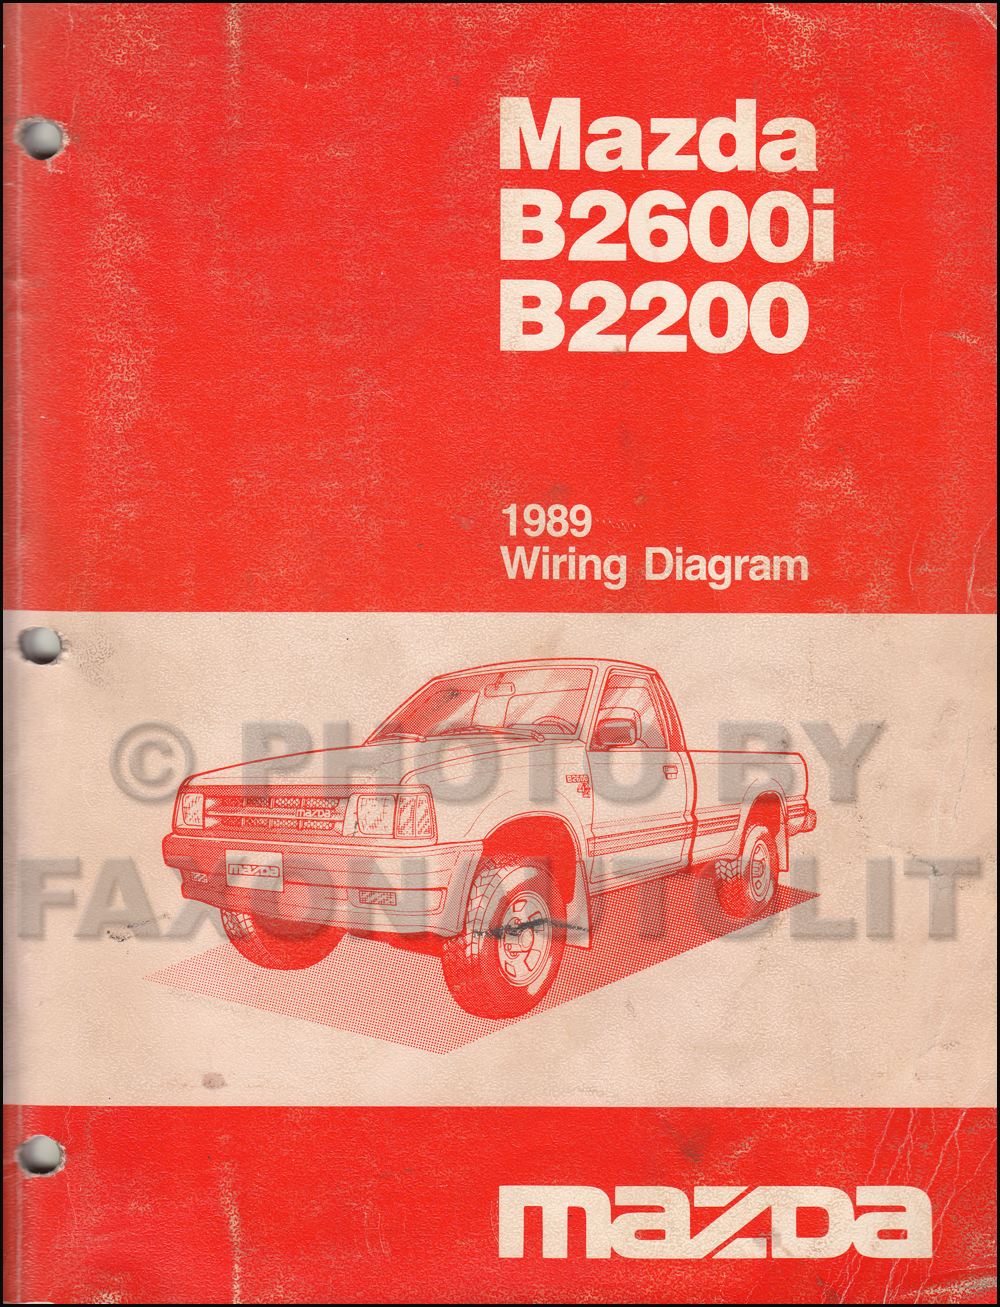 Mazdab Ib Owd on 1987 Mazda B2200 Wiring Diagram